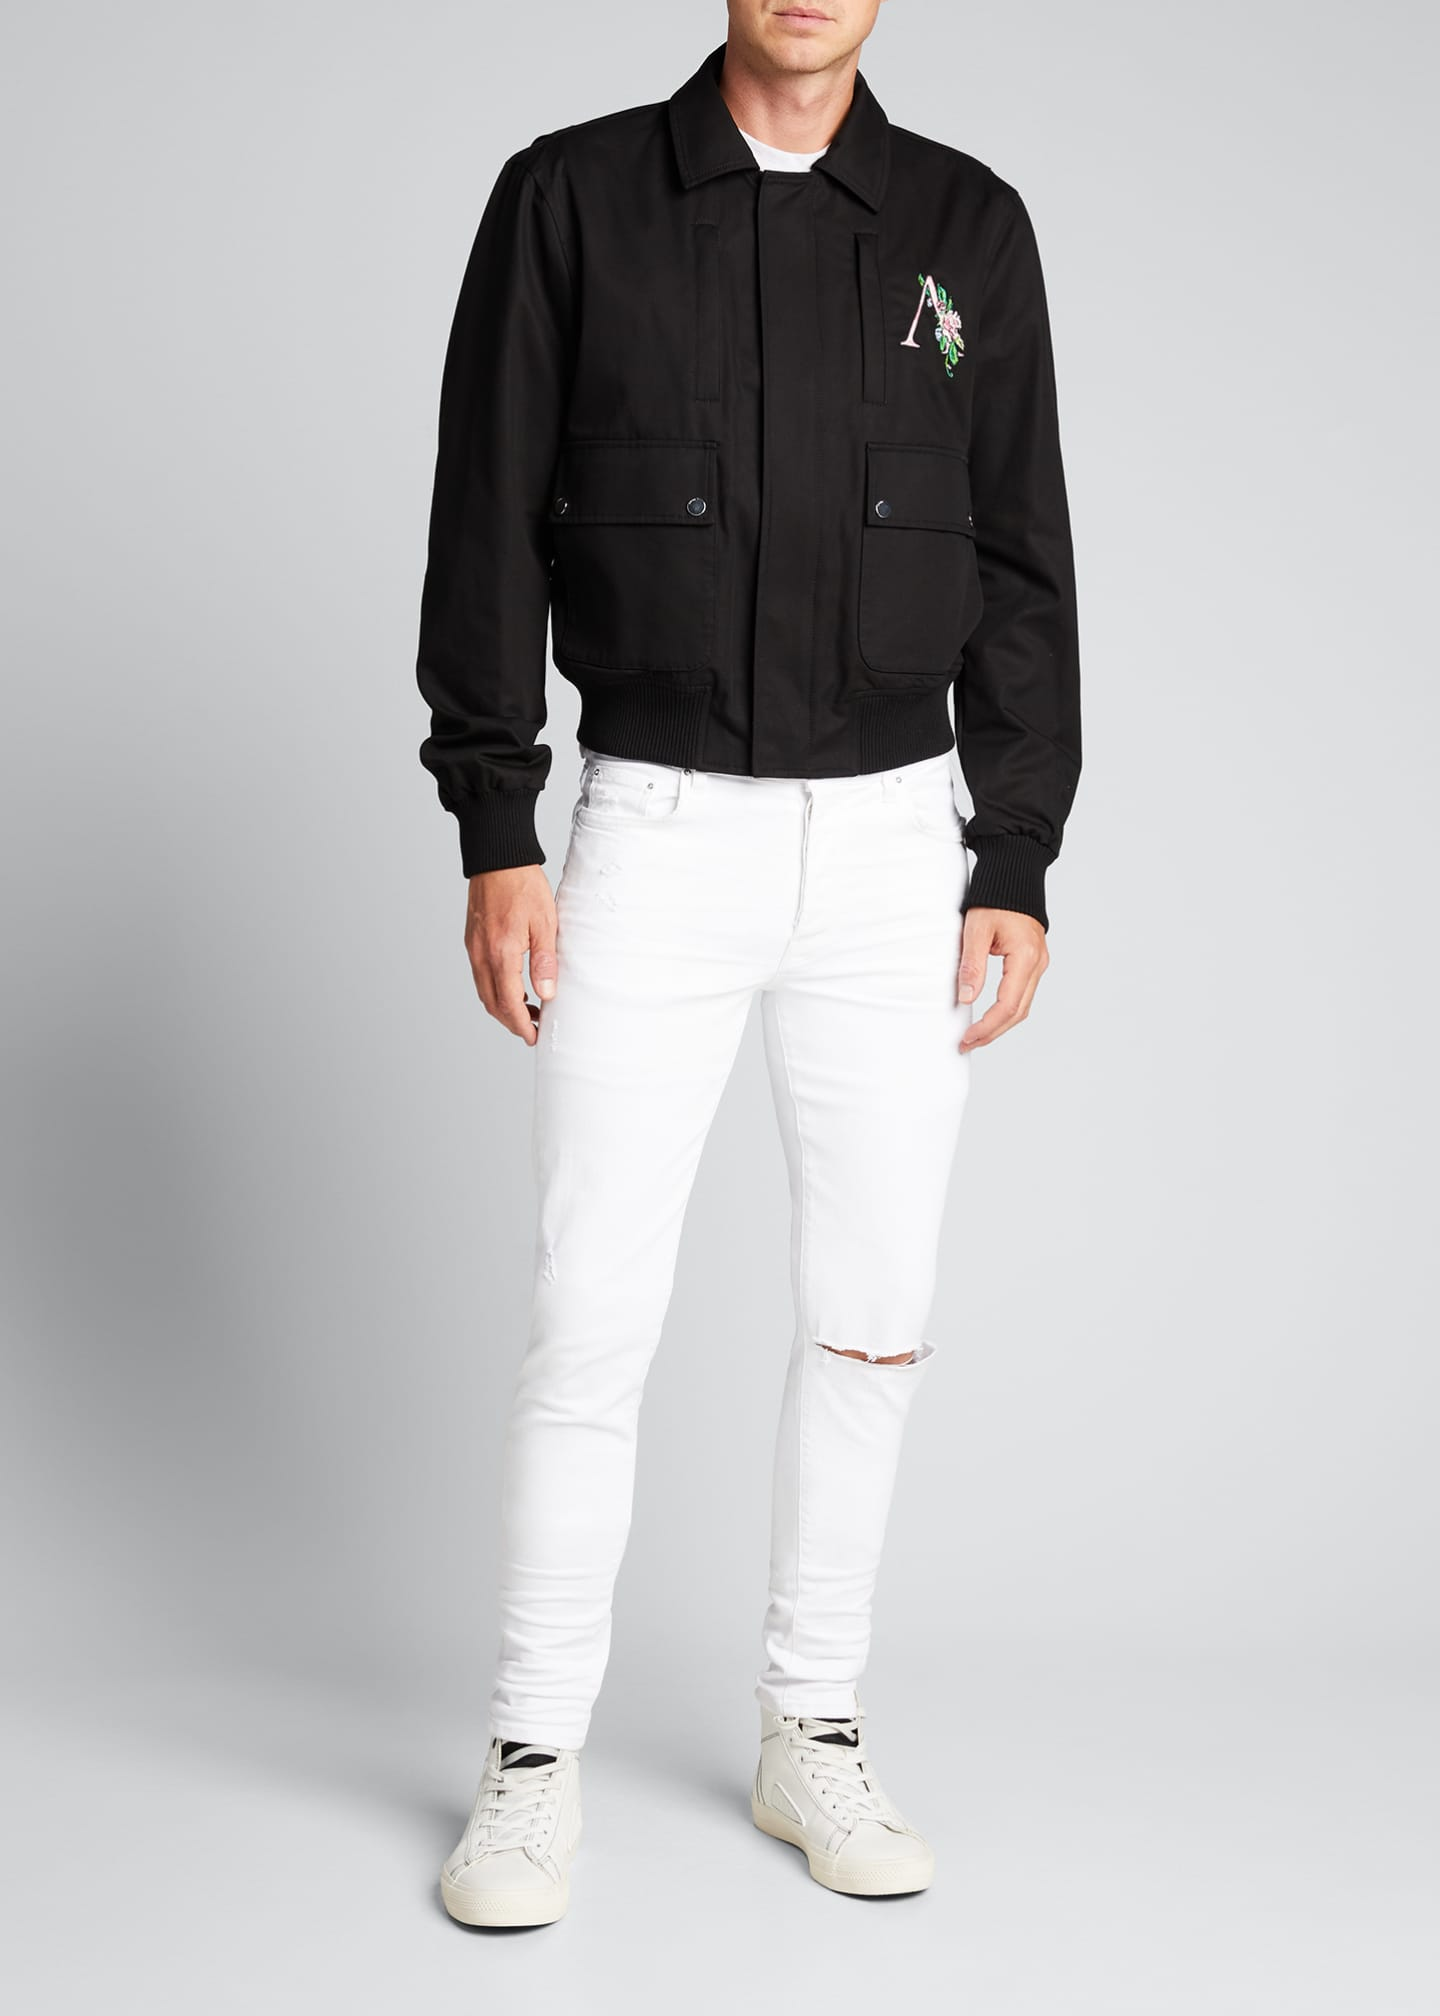 Image 1 of 5: Men's Floral Logo 4-Pocket Jacket